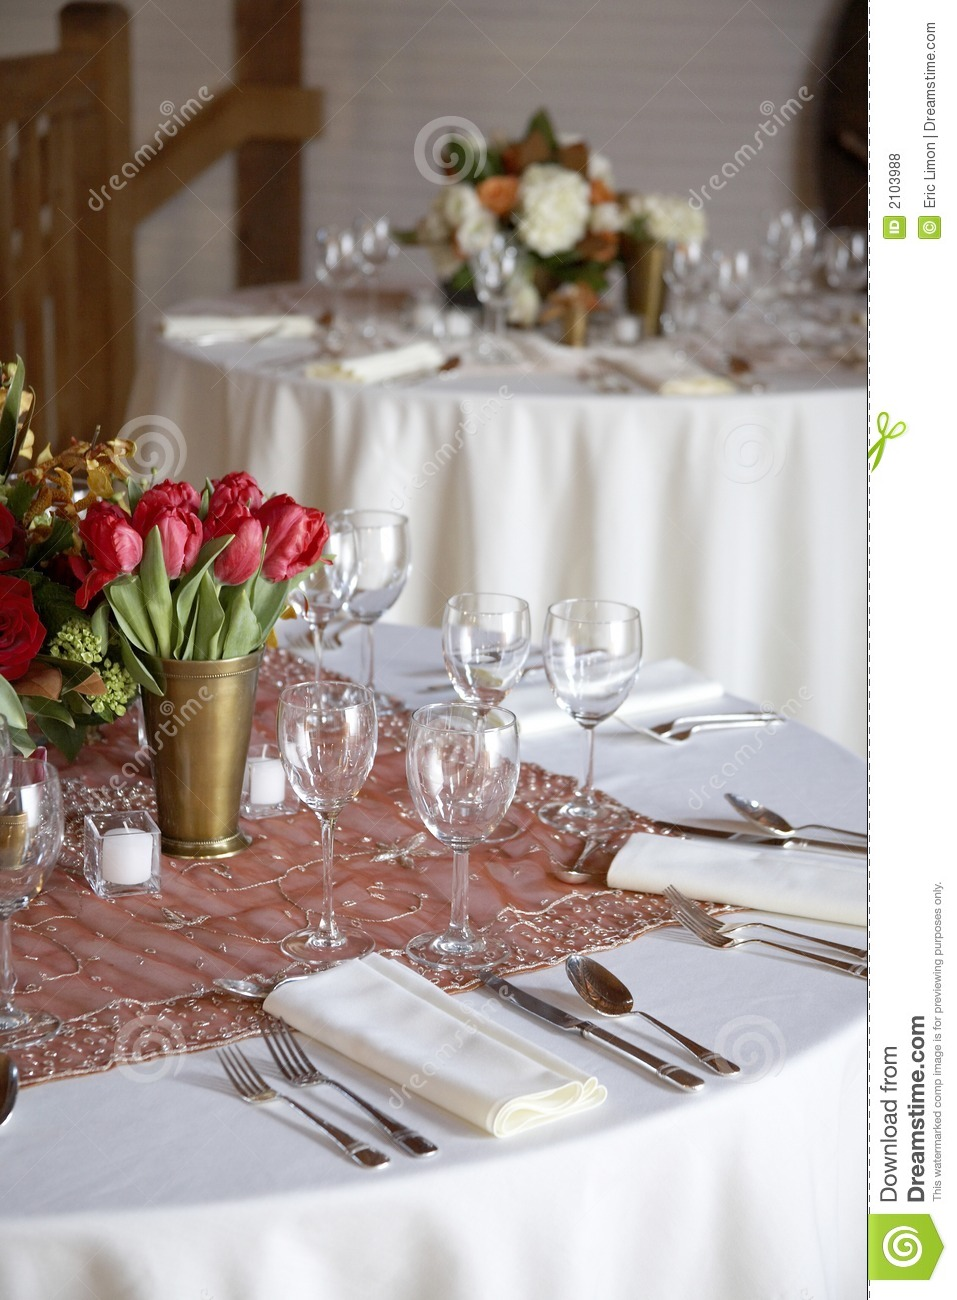 Wedding table set for fine dining royalty free stock for Fine dining table setting